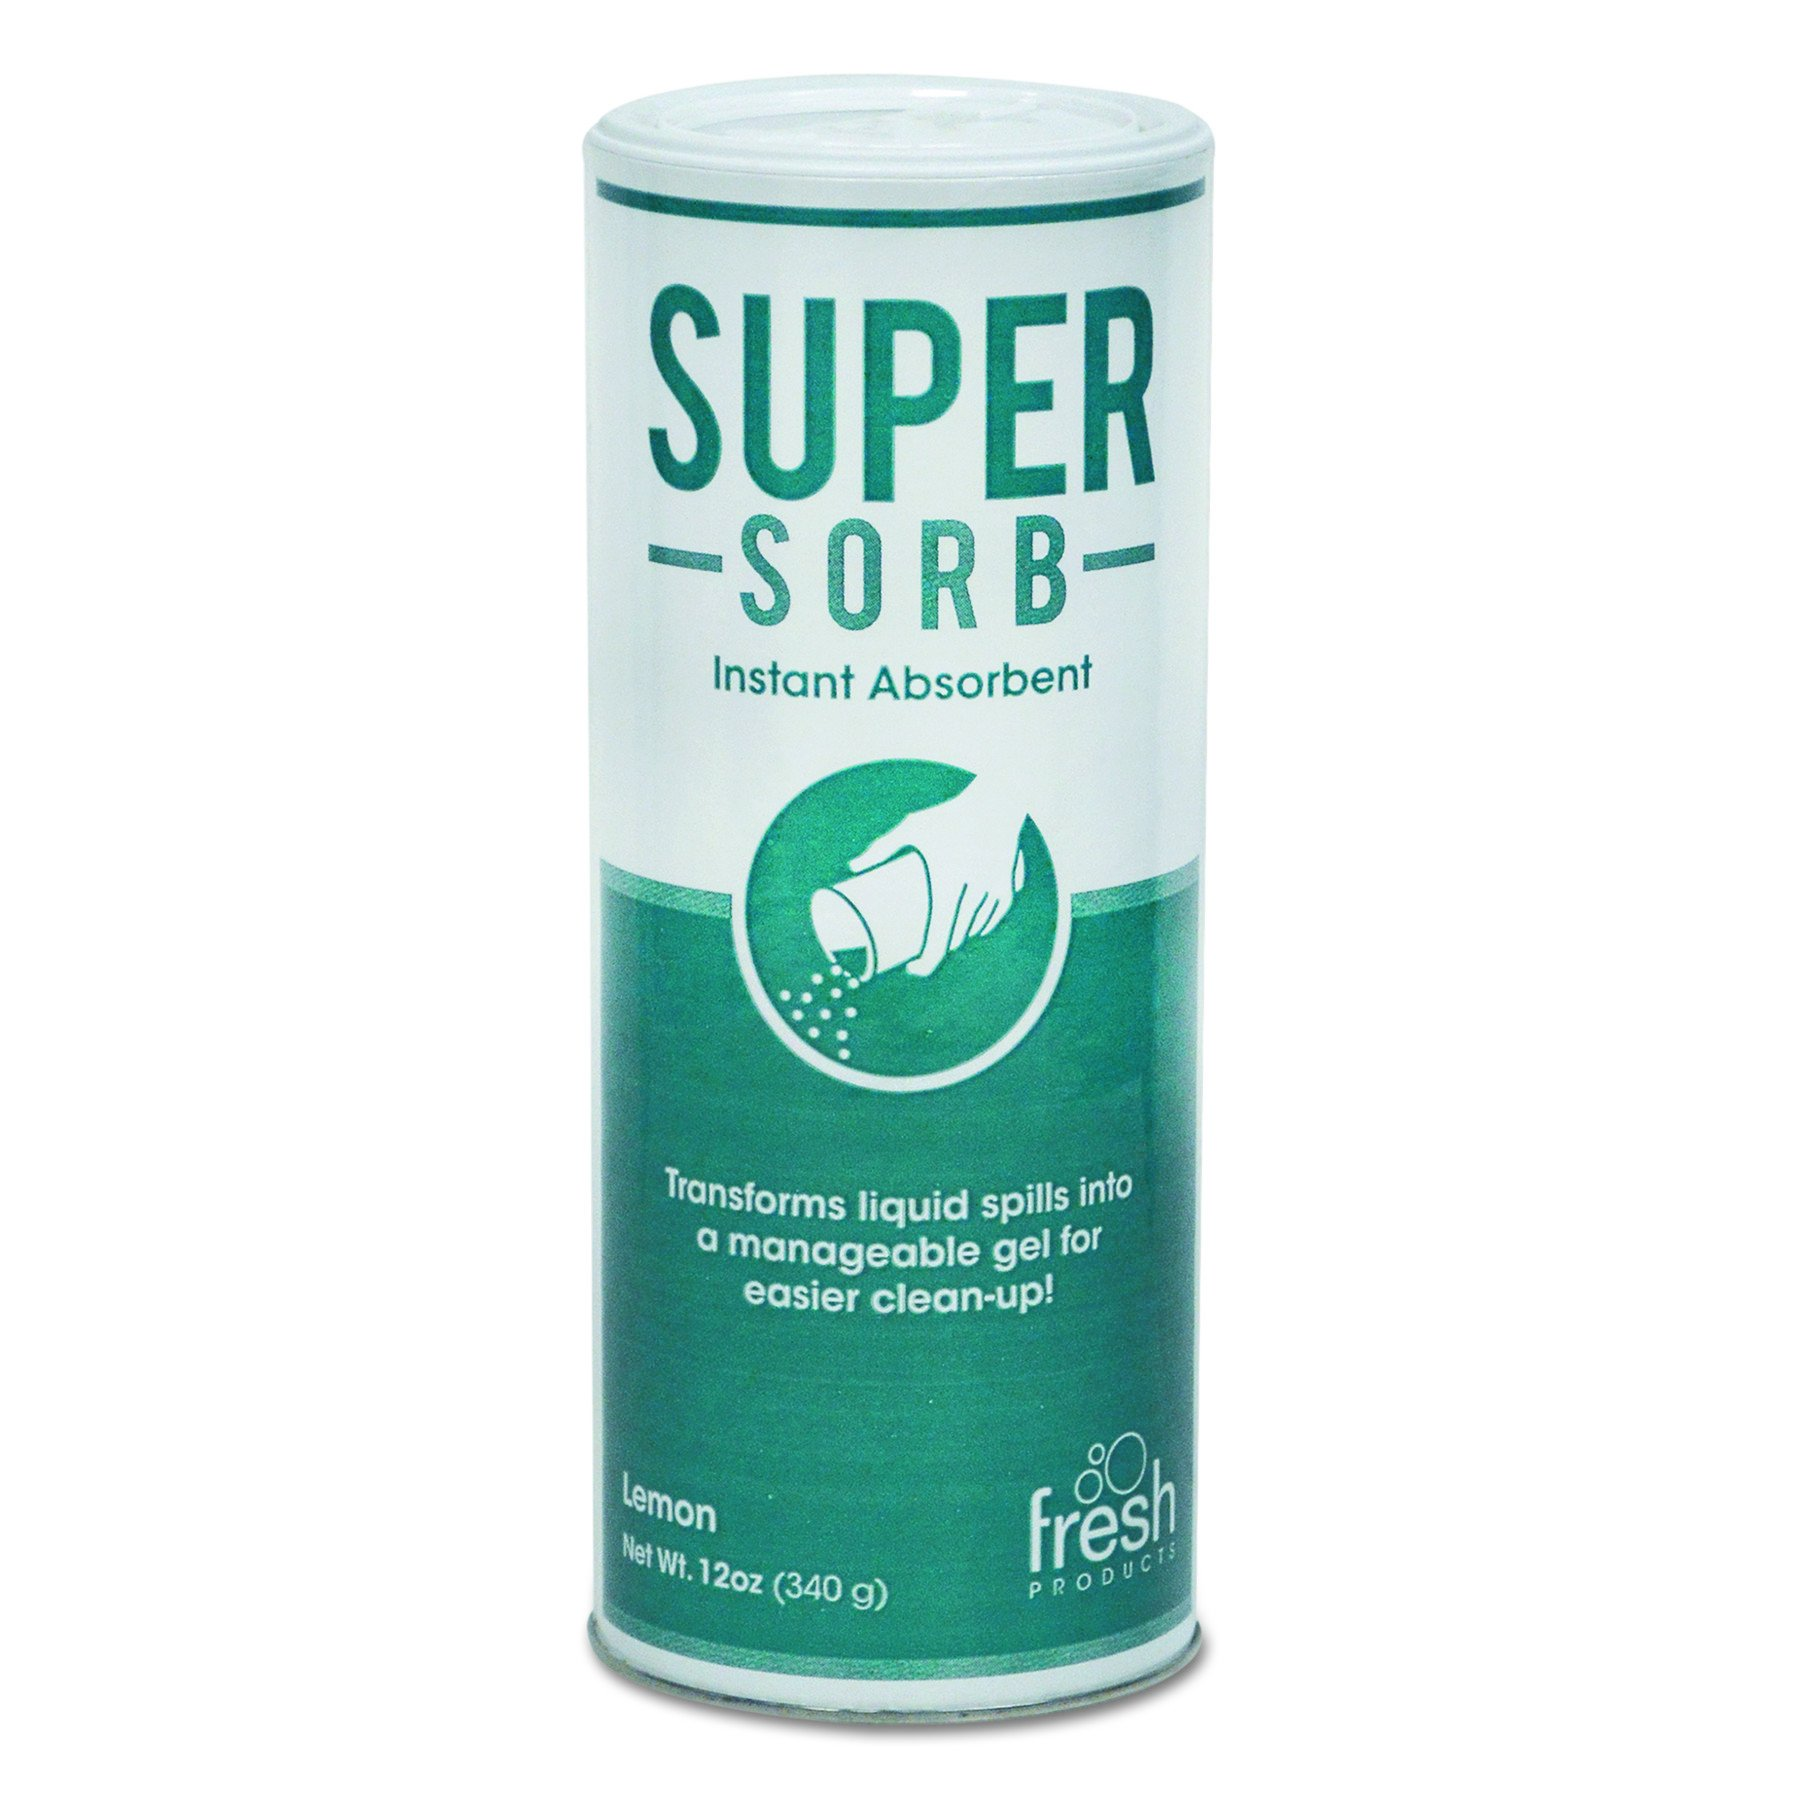 Fresh Products FRS 6-14-SS FRS614SSBX Super-Sorb Liquid Spill Absorbent, Powder, 12 oz. Shaker Can, Lemon-Scented (Pack of 6)